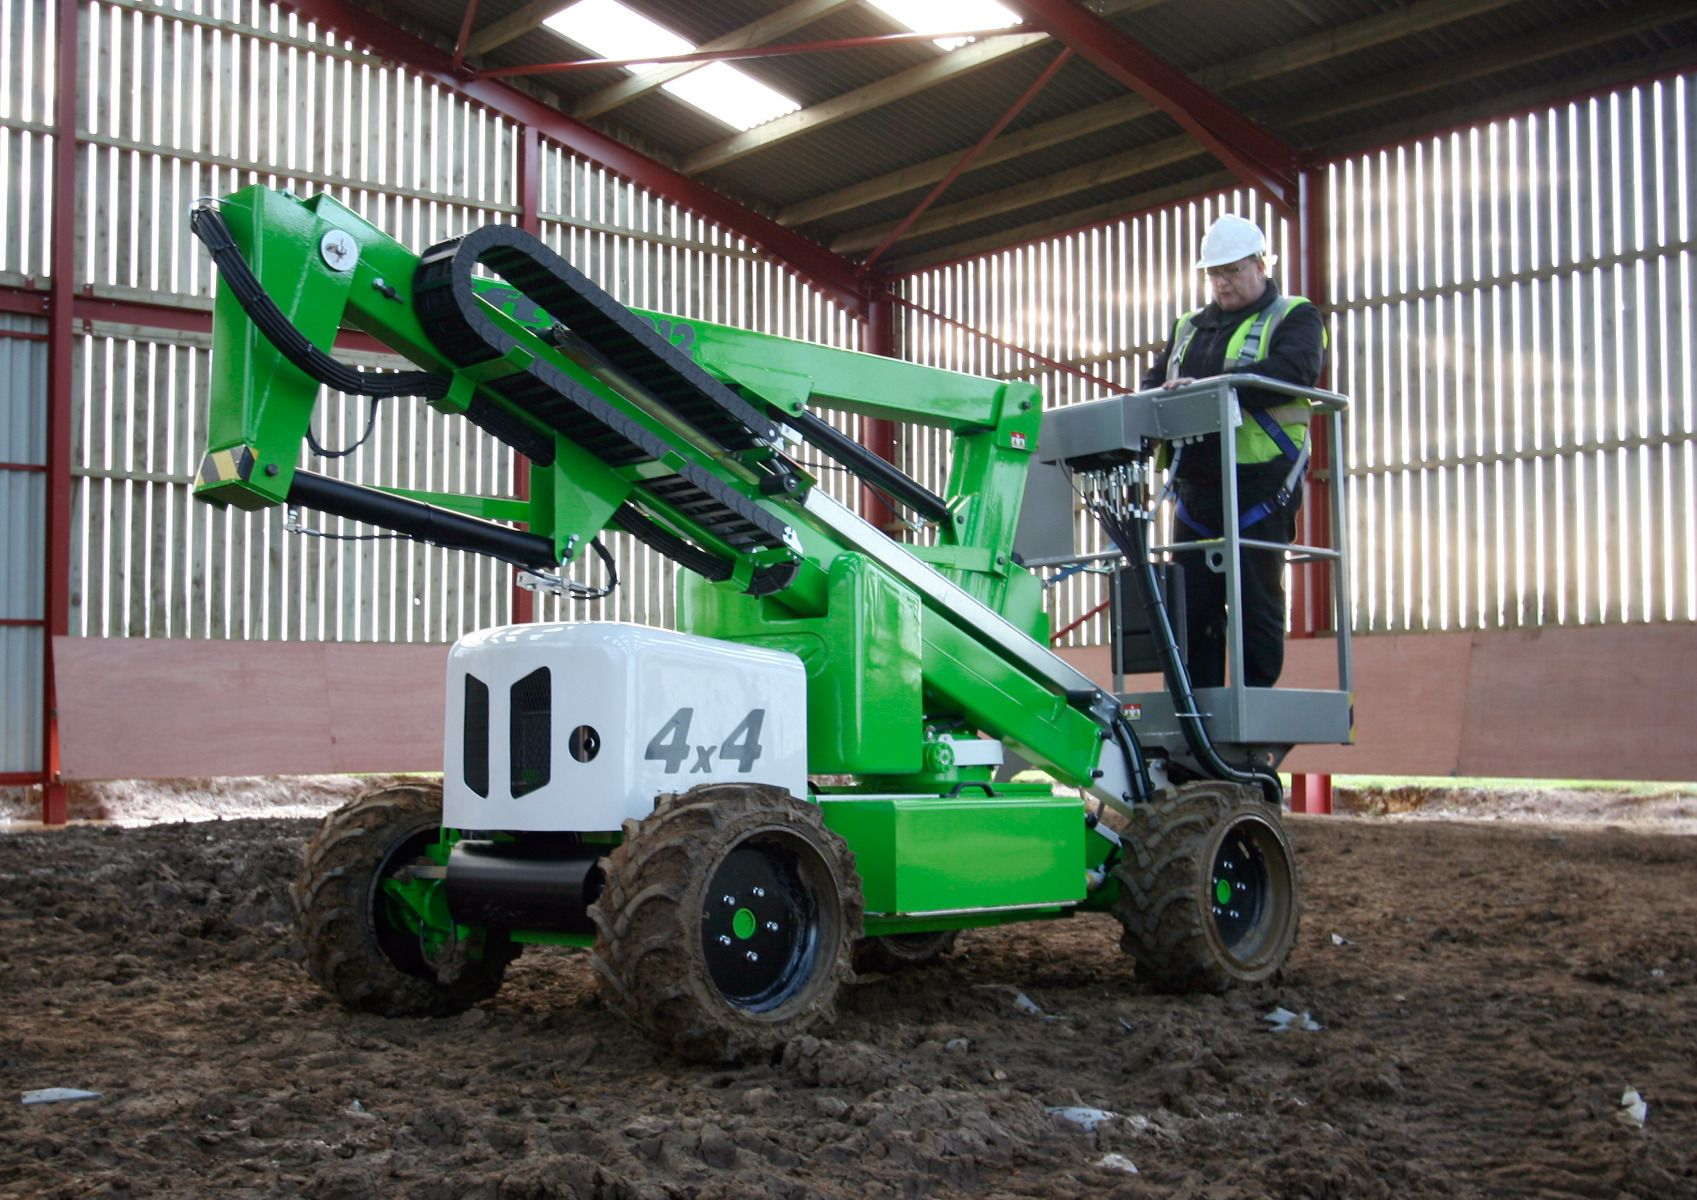 Niftylift Height Rider 12 boom lift